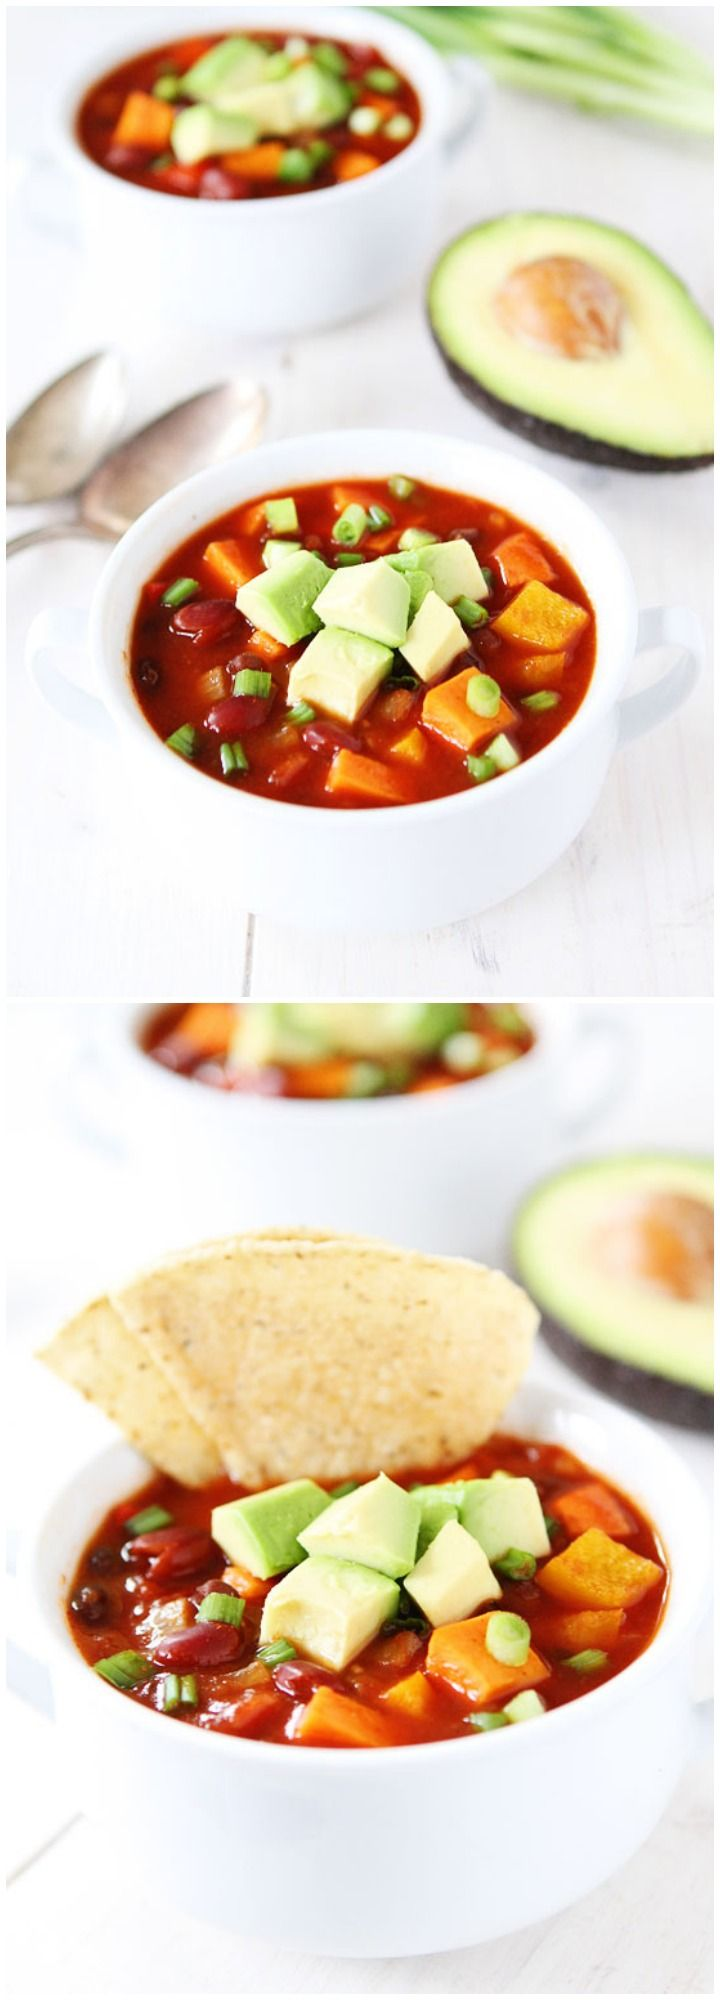 Slow Cooker Vegan Sweet Potato Chili Recipe on twopeasandtheirpod.com This easy and healthy chili is great for busy weeknights or entertaining!